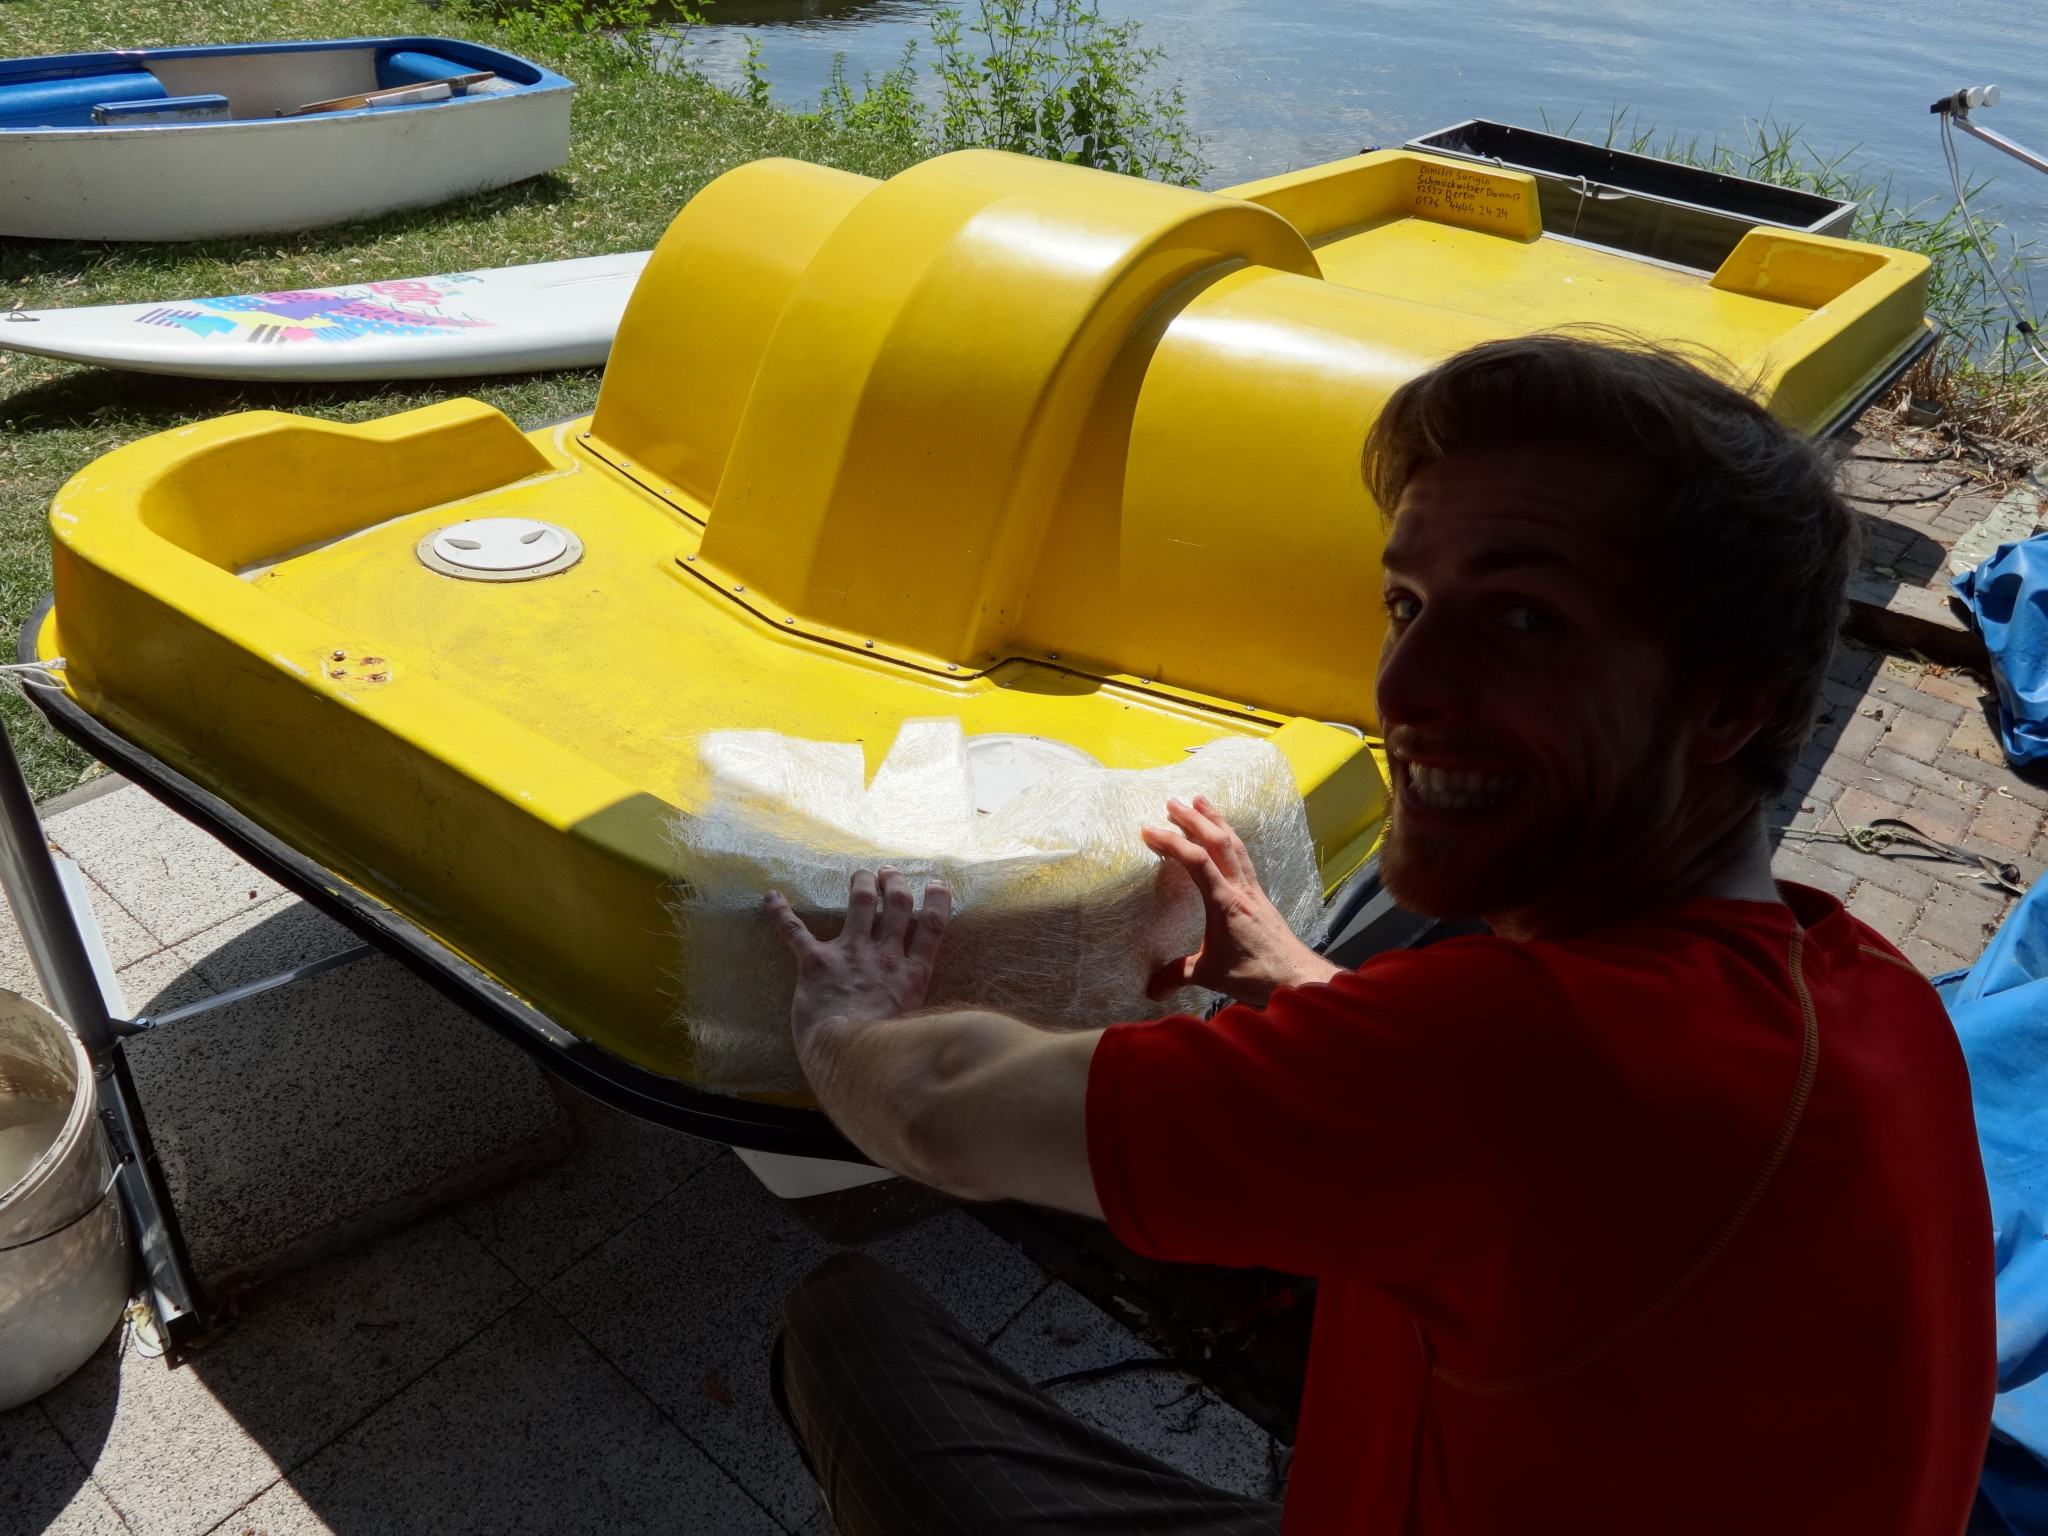 Matthes repairs boat with fibreglass